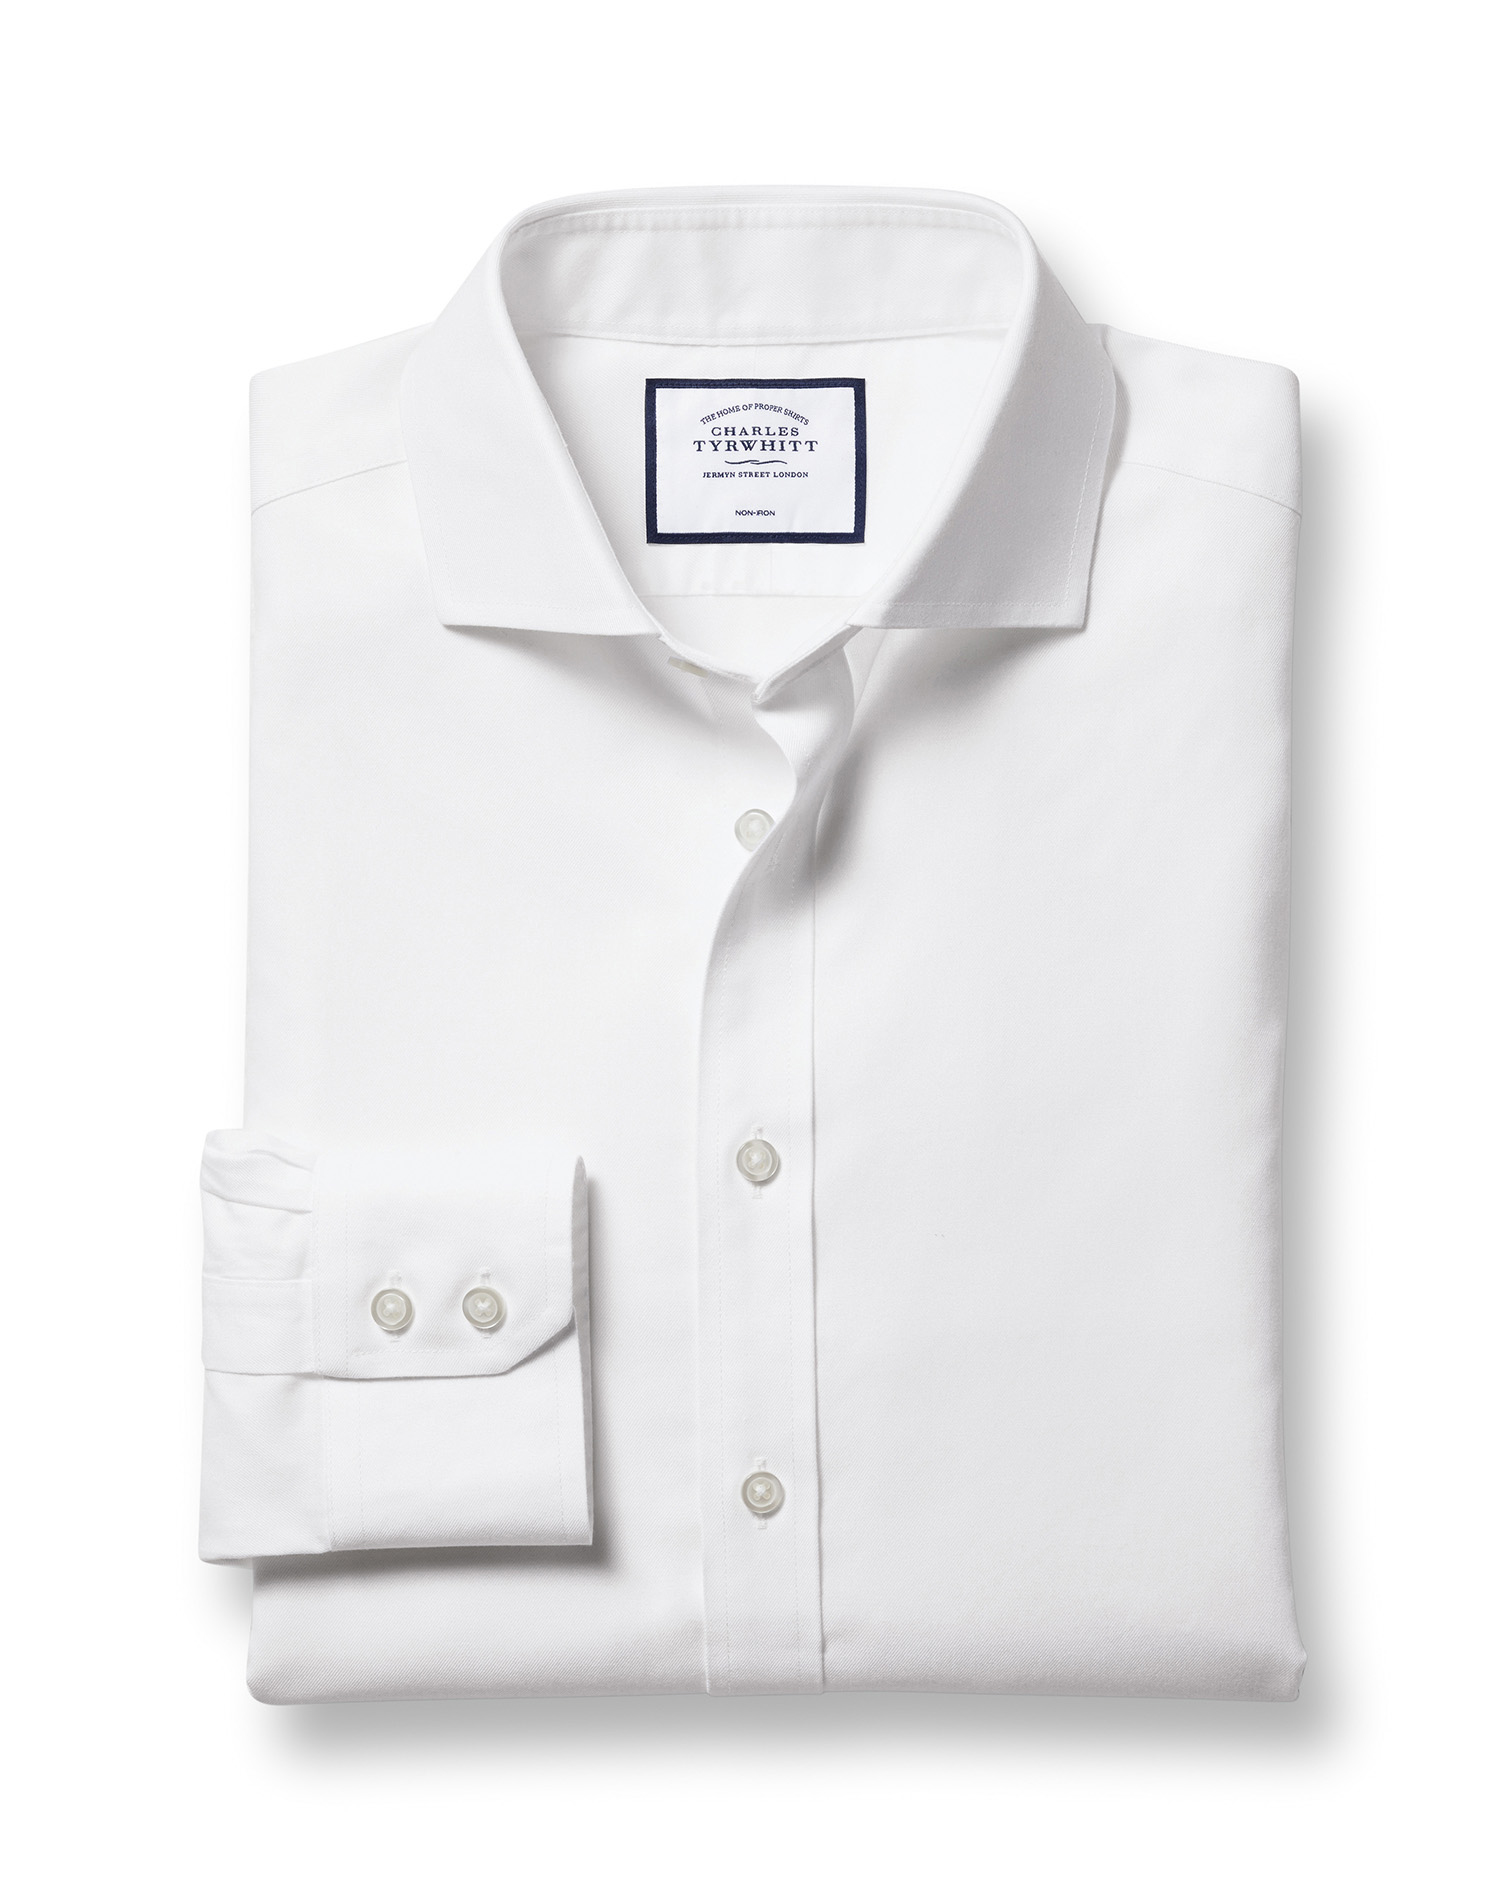 Classic Fit White Non-Iron Twill Cutaway Collar Cotton Formal Shirt Double Cuff Size 18/36 by Charle